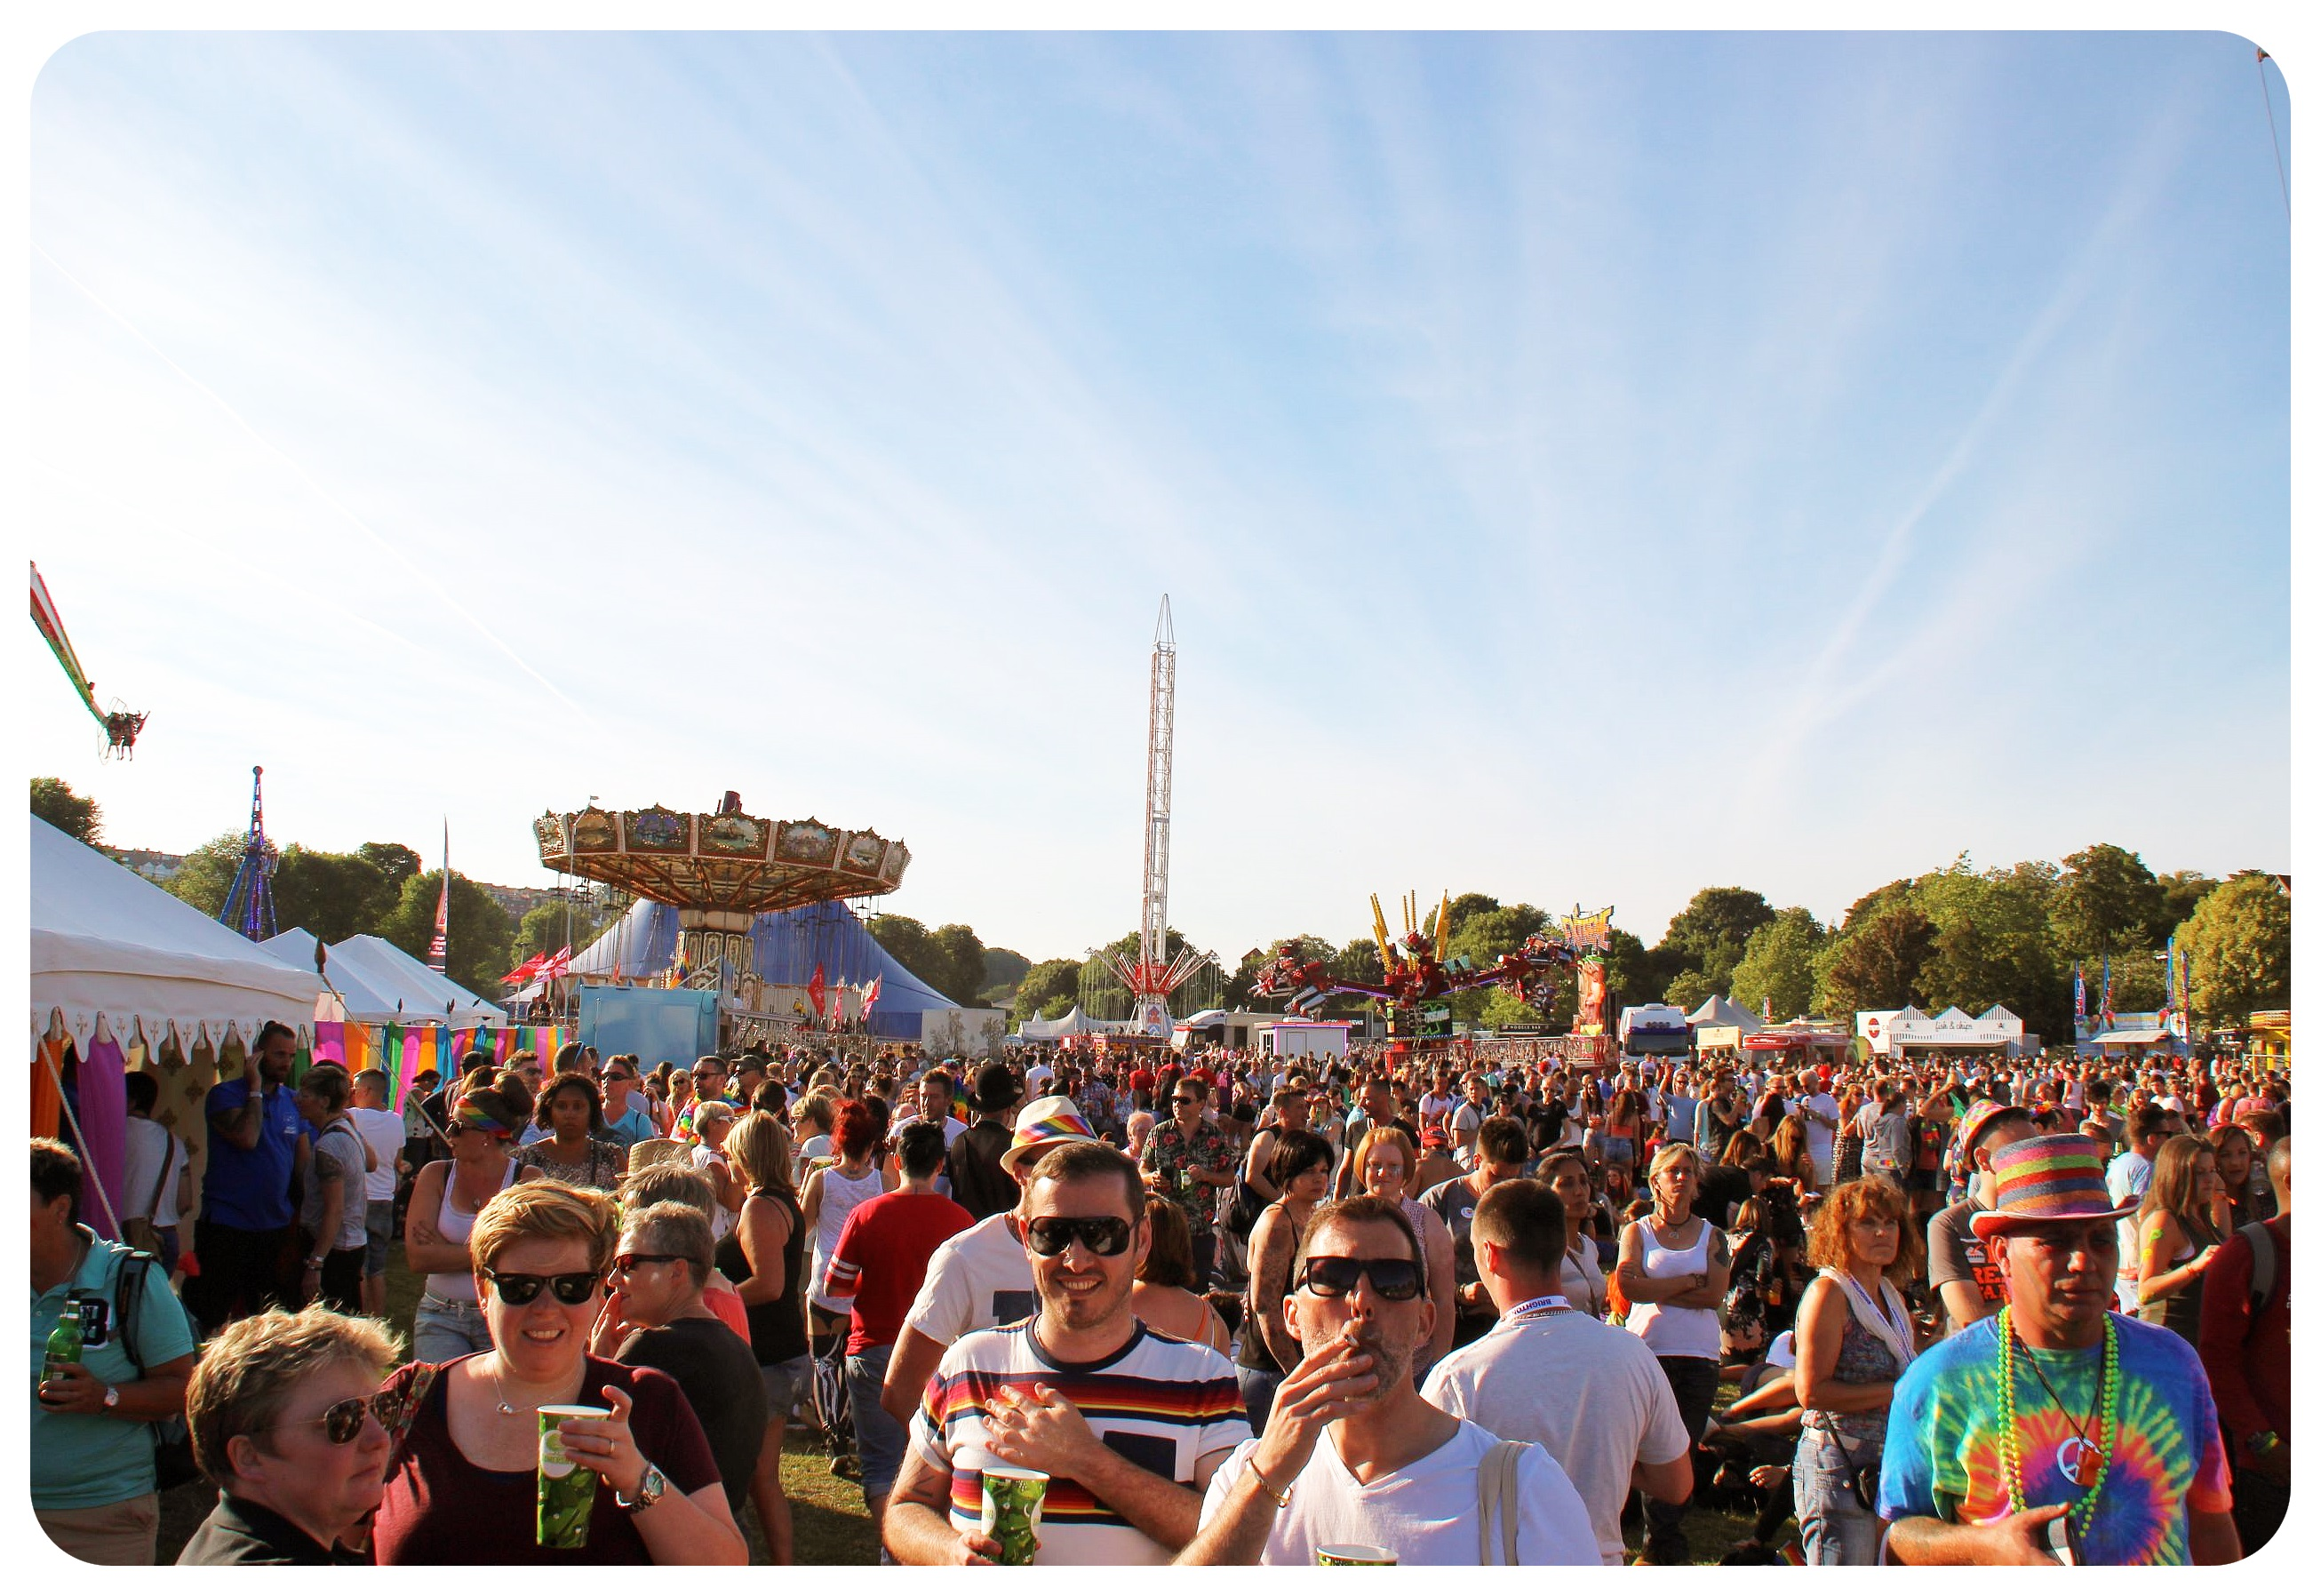 brighton pride festival grounds